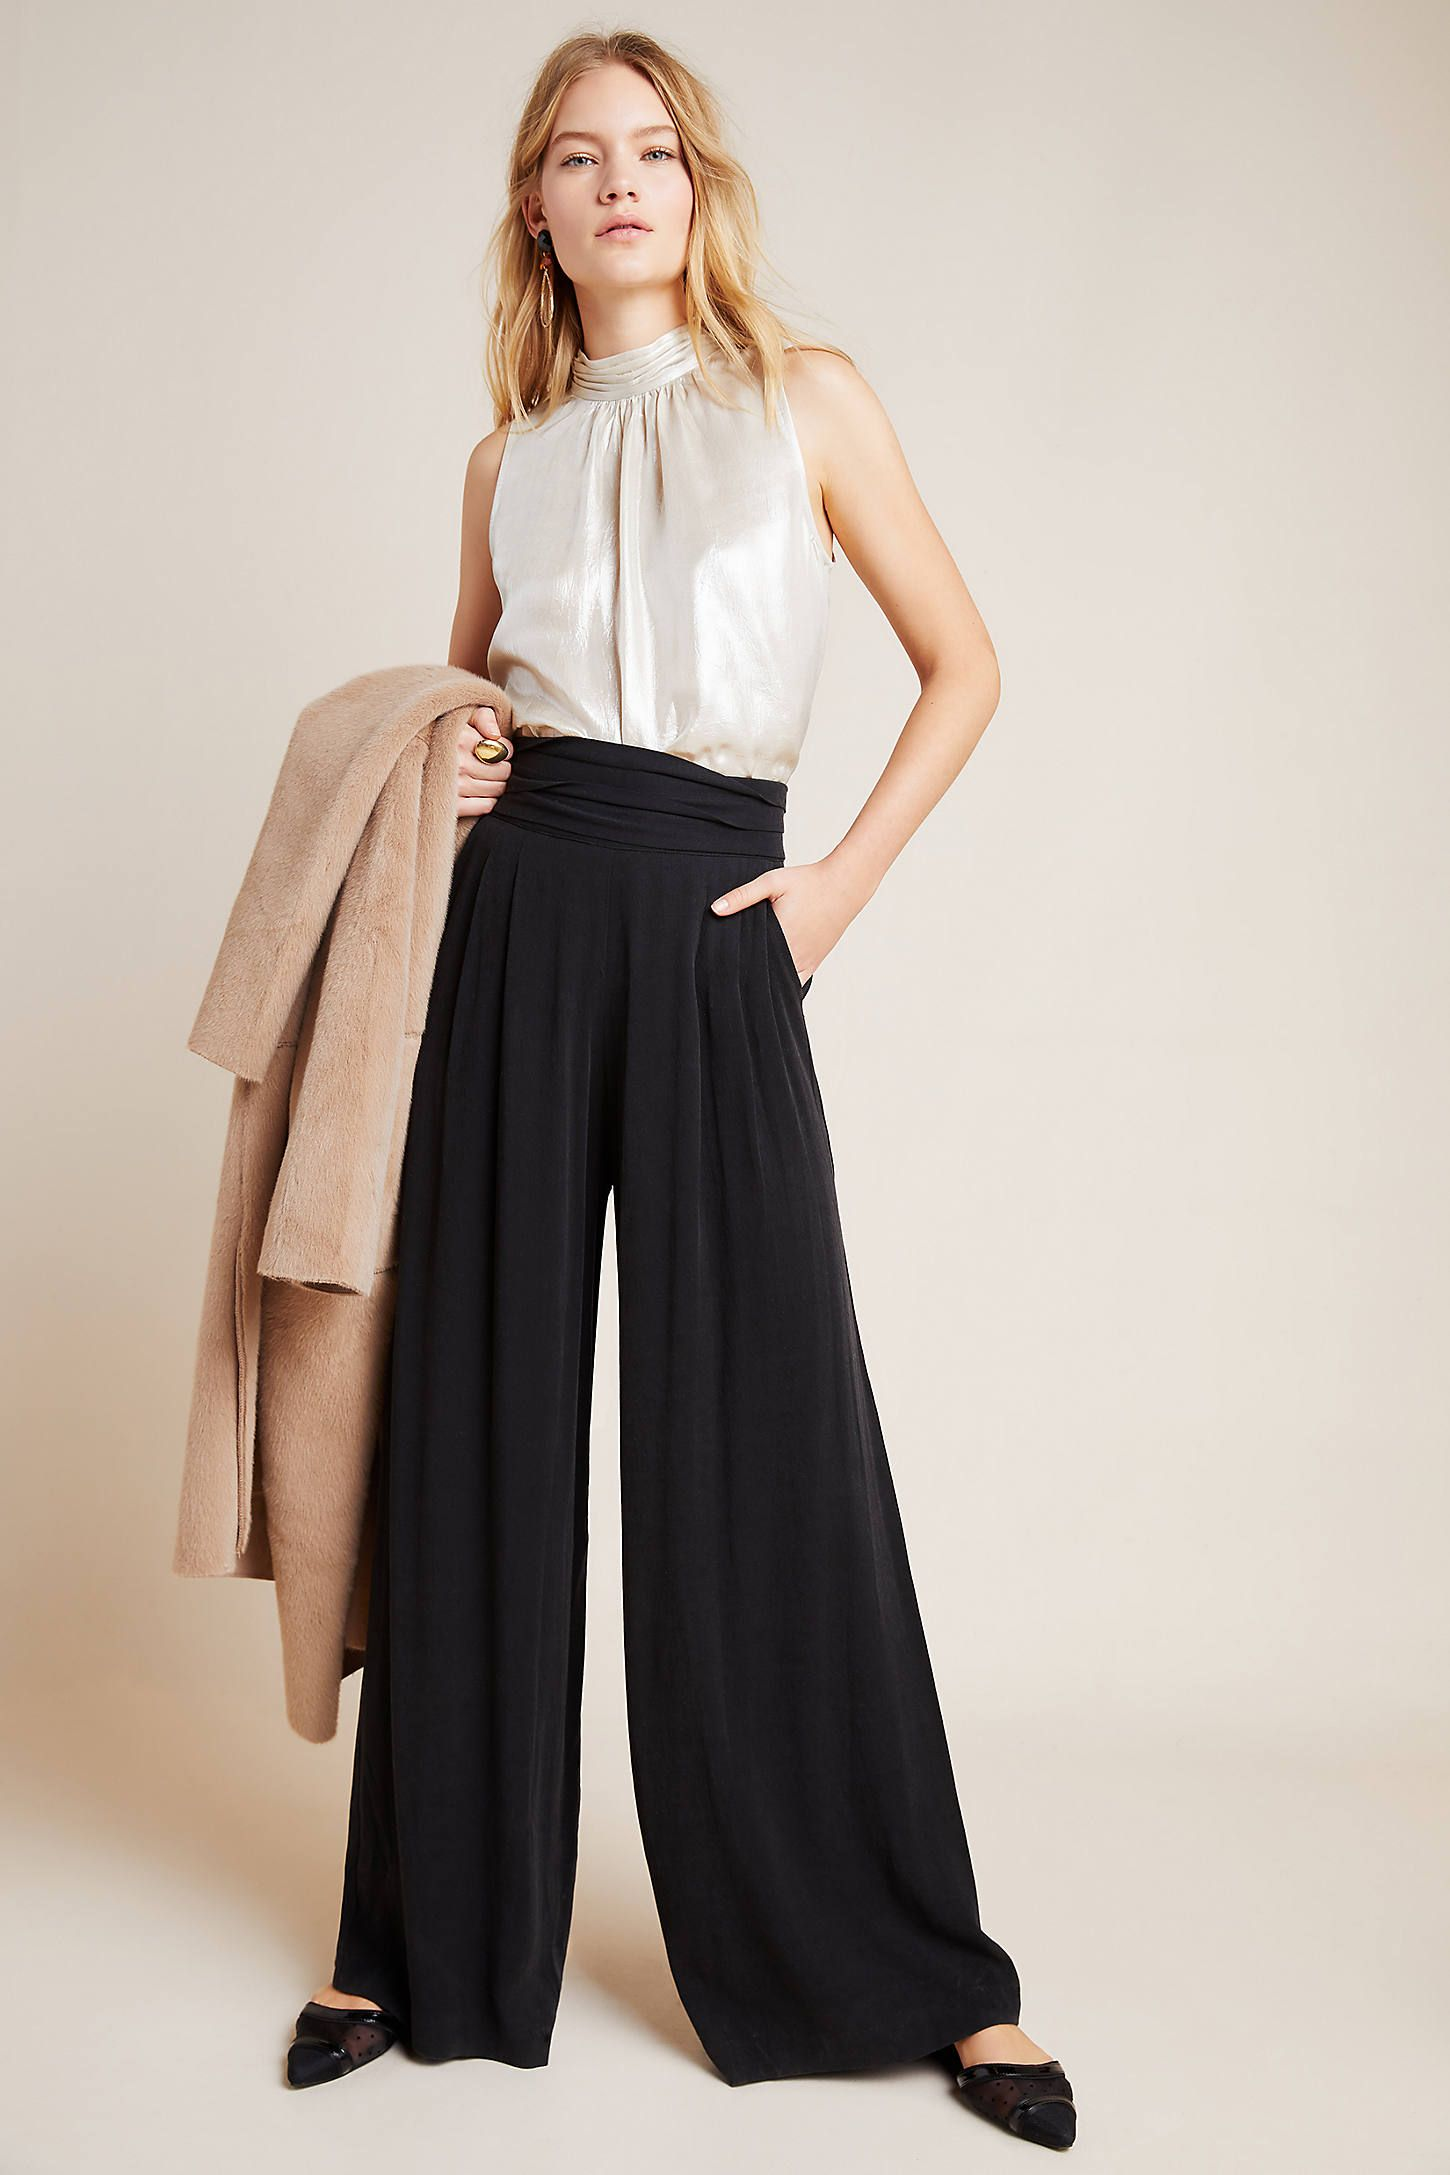 Ophelia Wide-Leg Trousers by The Odells in Black Size: S, Women's Pants at Anthropologie 3